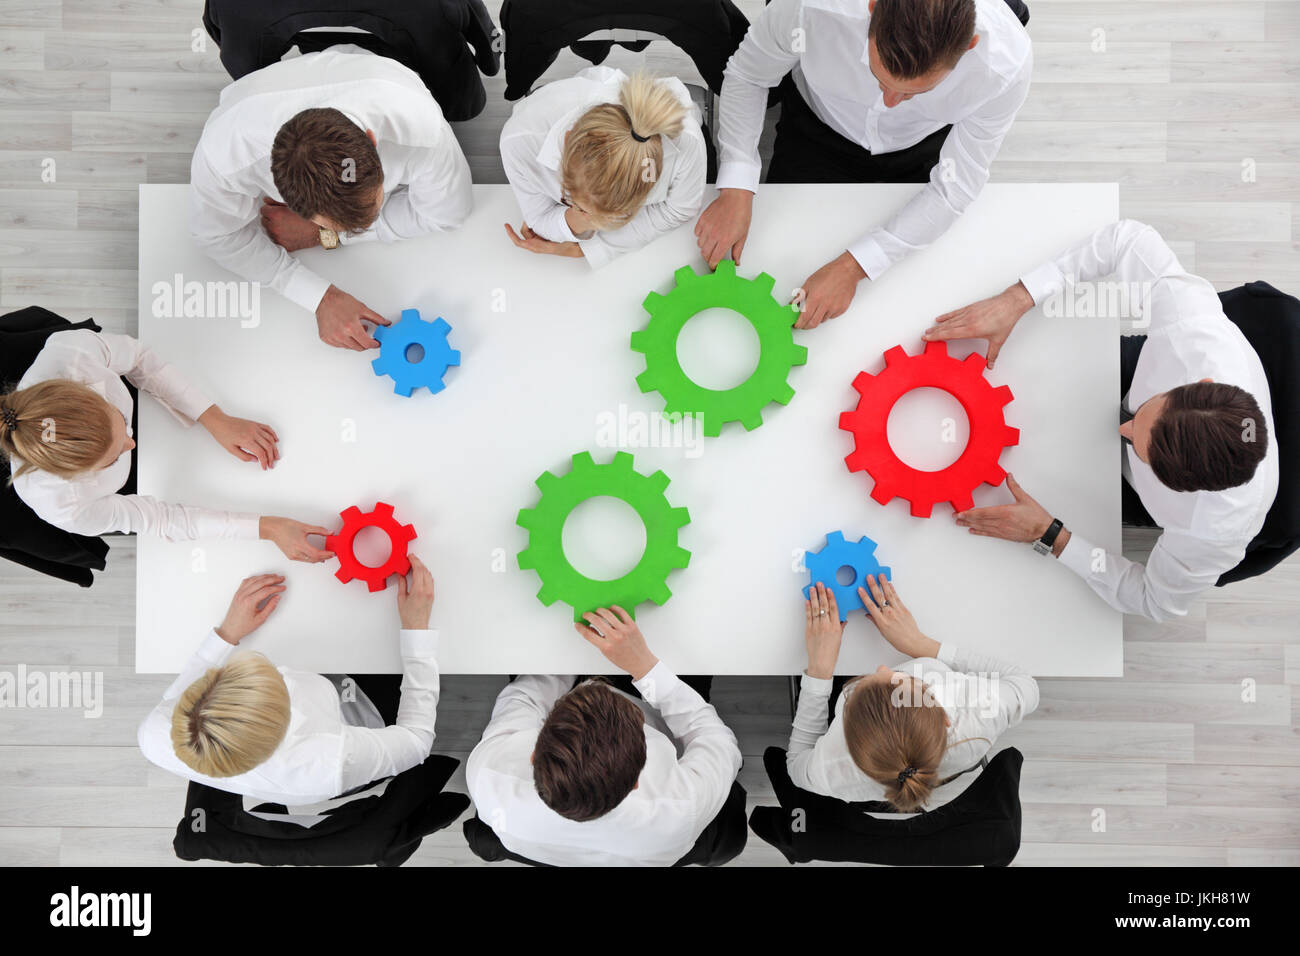 Business problem solution, mechanism of business, teamwork concept, business team sitting around white table with - Stock Image